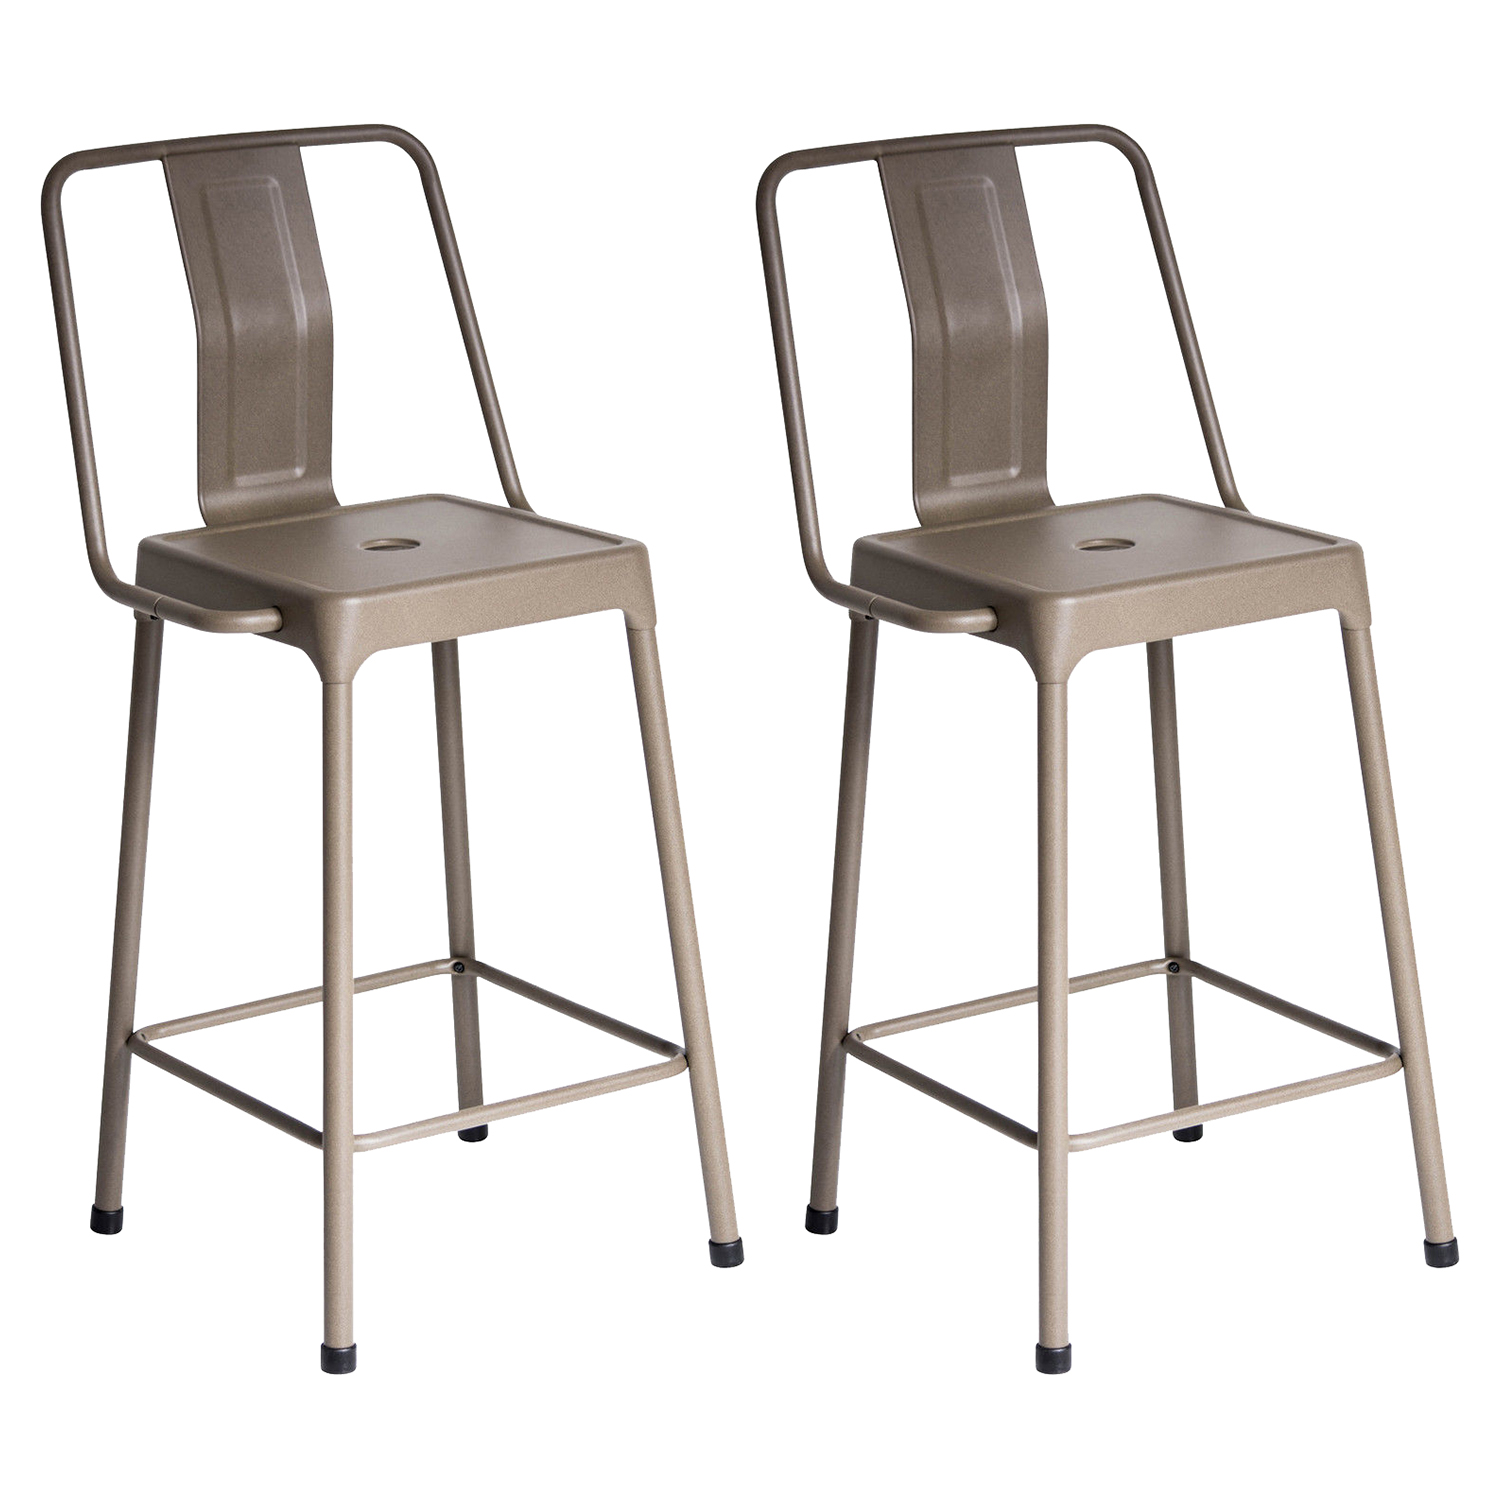 Energy Counter Stool - Cappuccino (Set of 2) - LMS-CS-CF-ENRG-CAP2